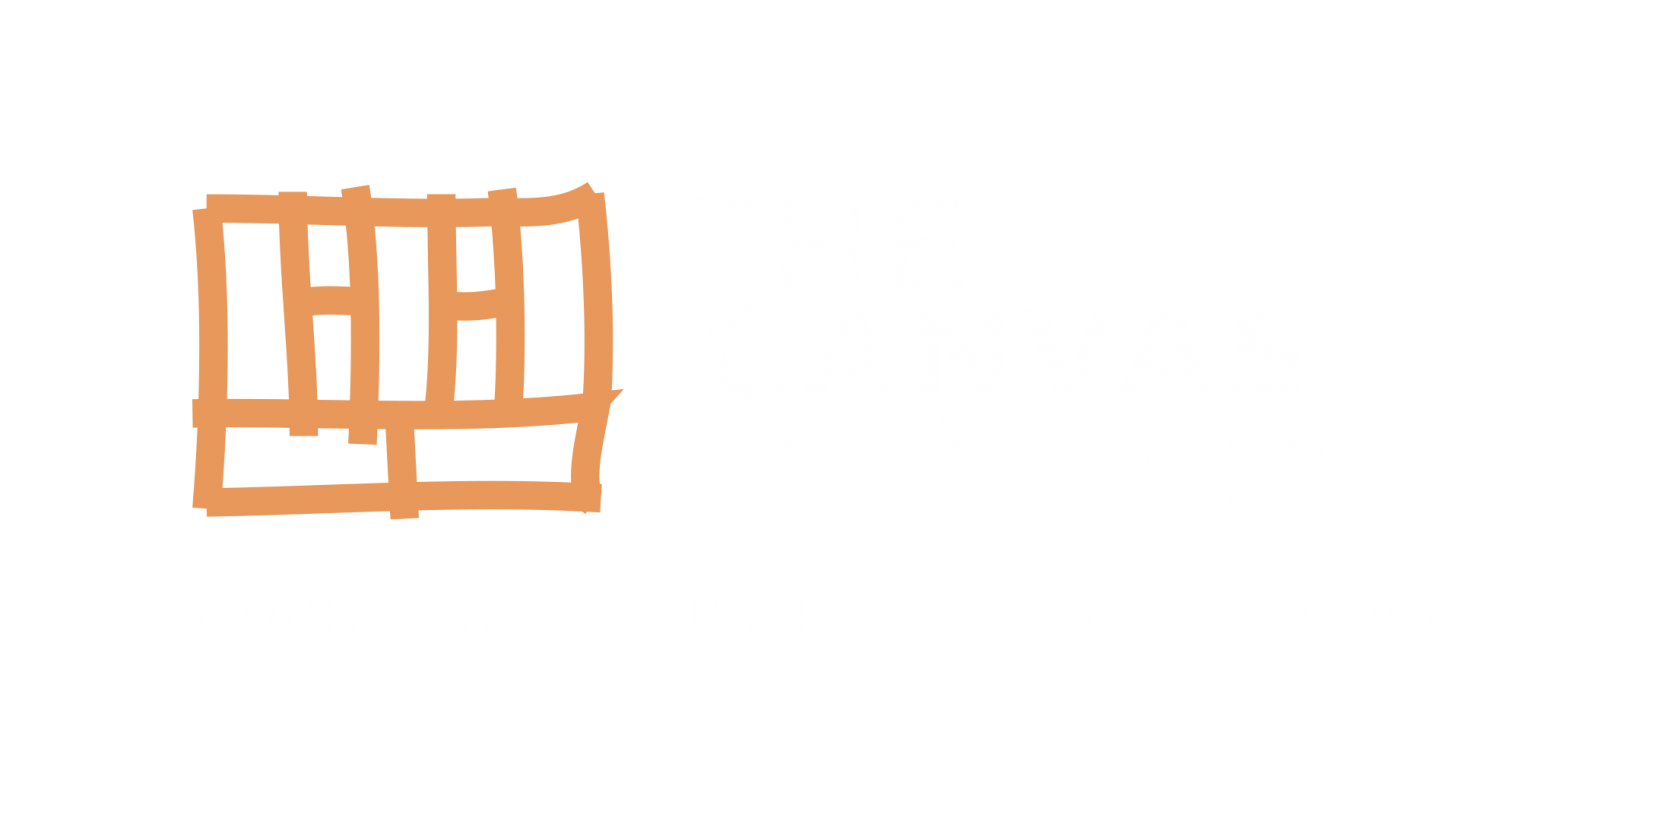 The Canvas Modeling